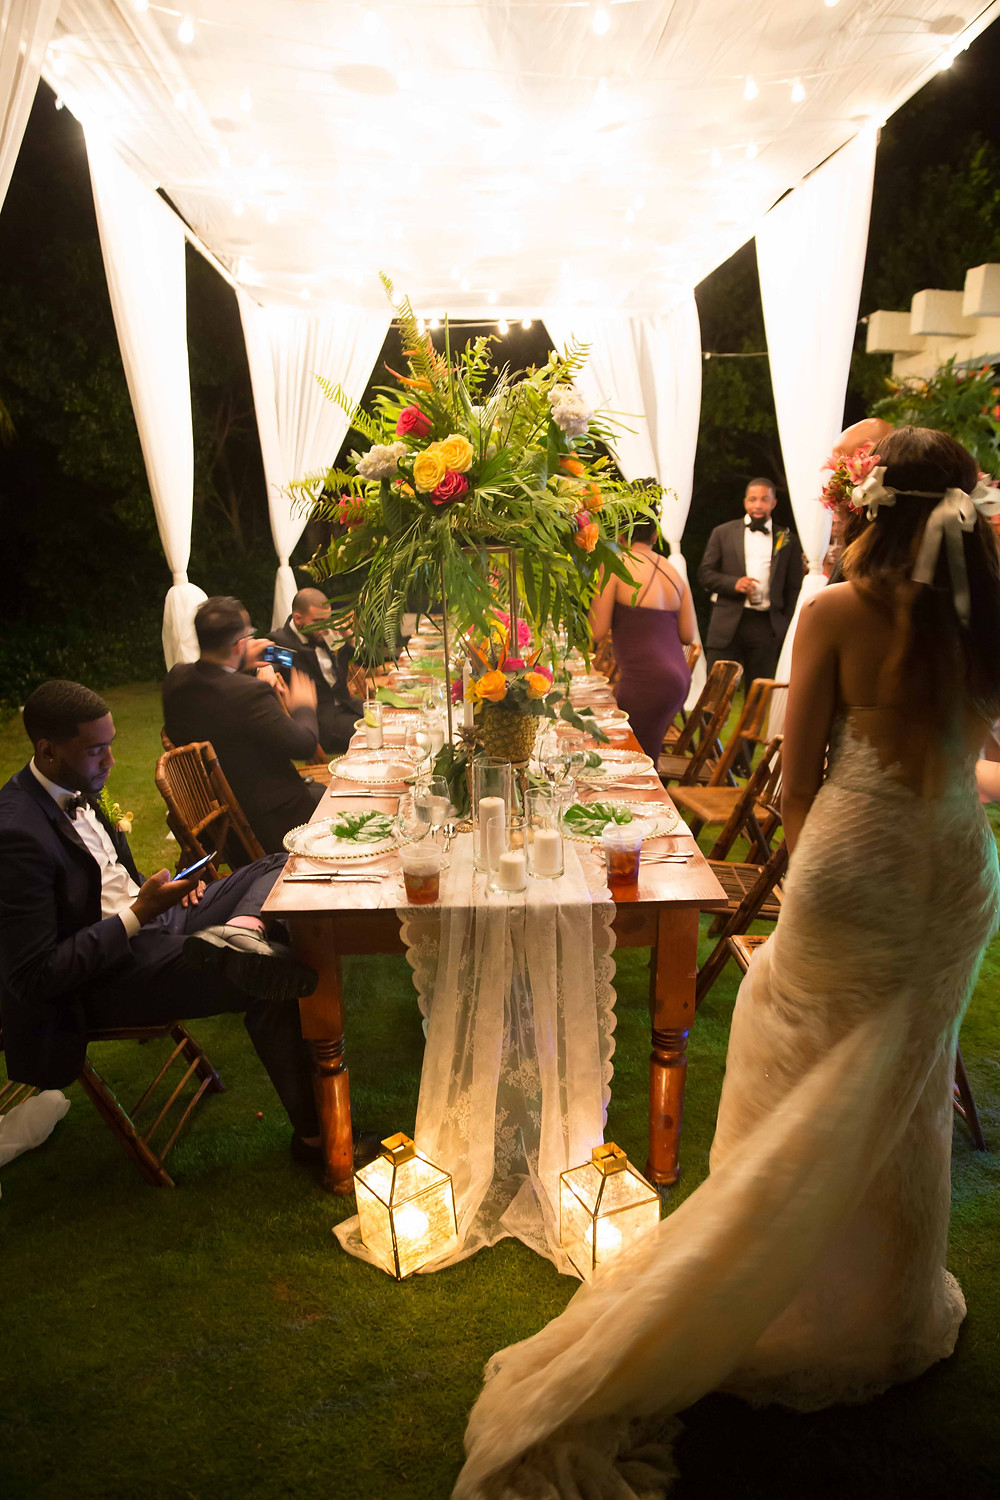 The dinner table at the destination wedding reception in Punta Cana, Dominican Republic.